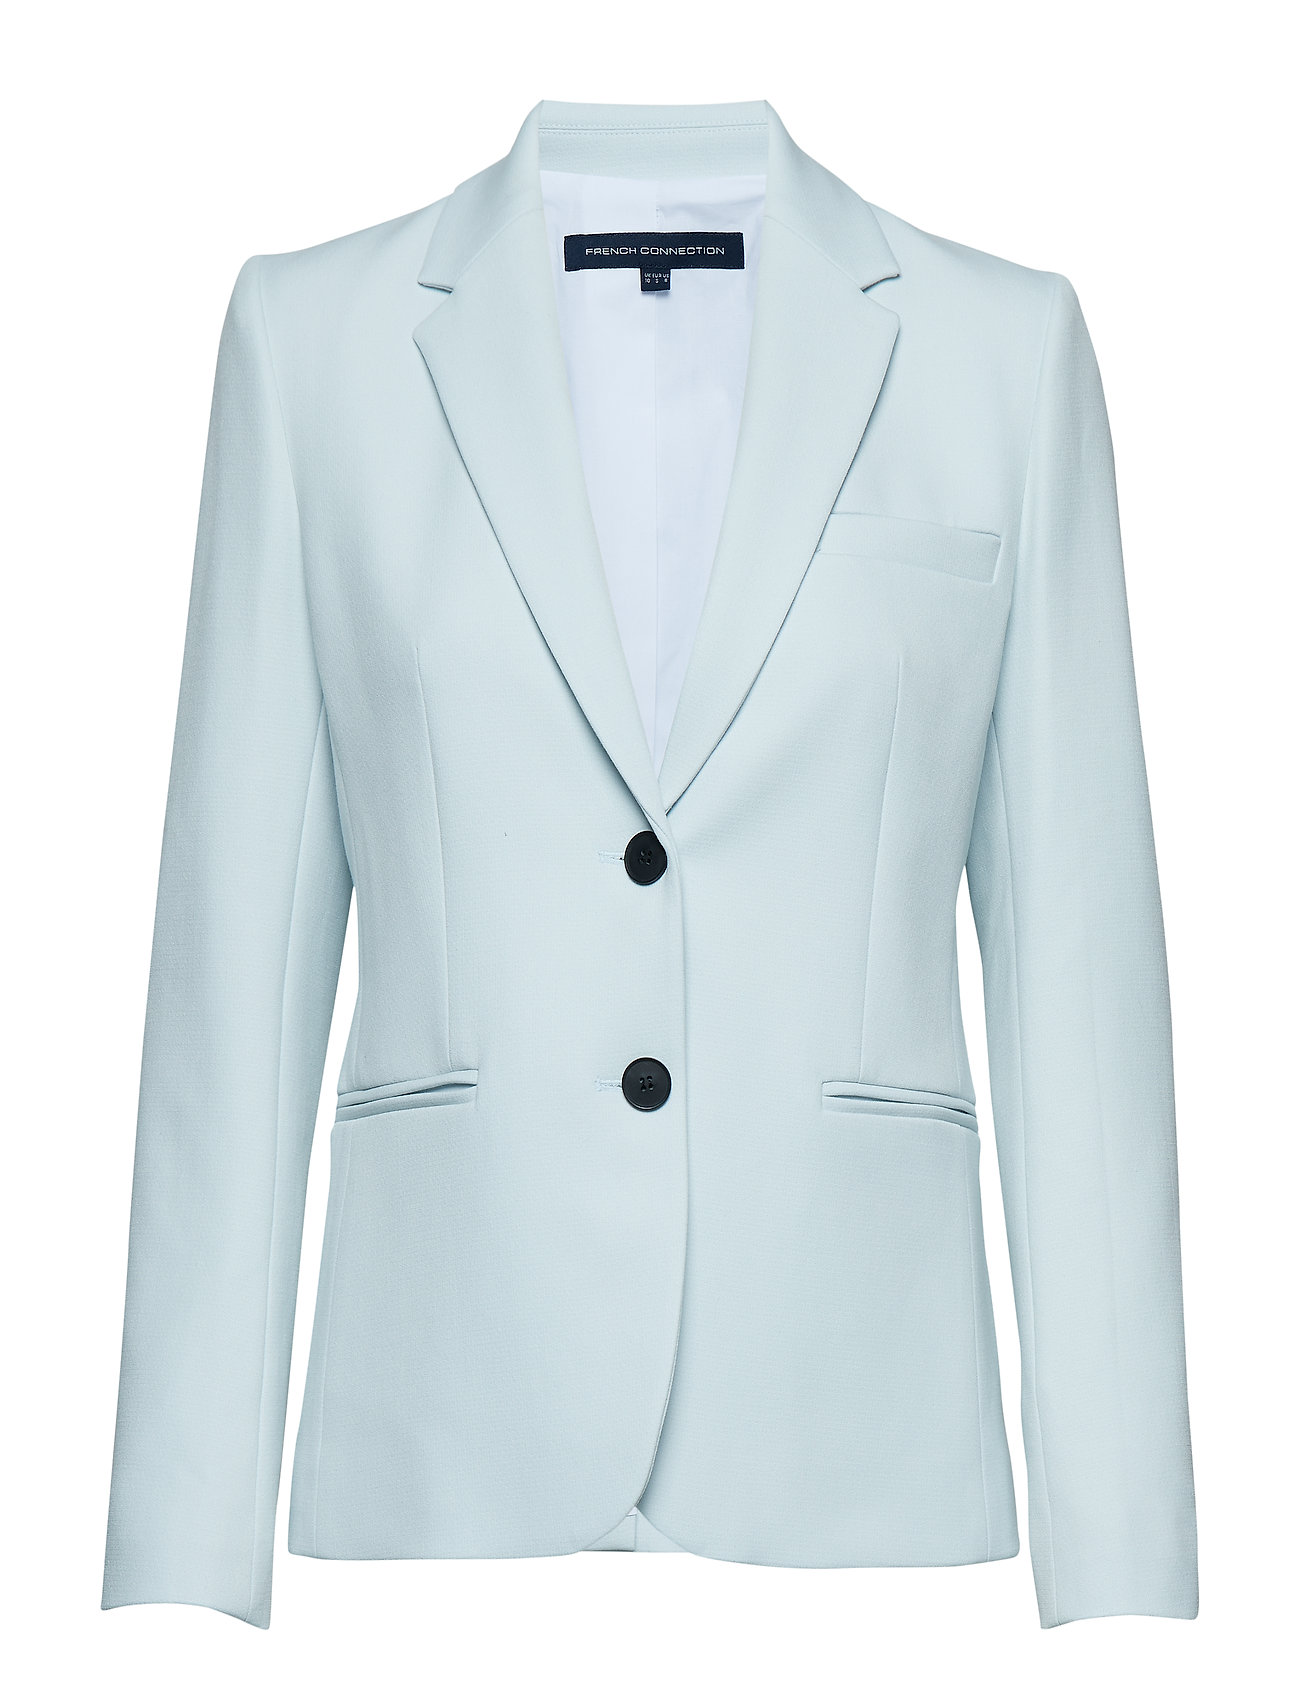 French Connection SUNDAE SUITING BLAZER - COOL DREAM BLUE